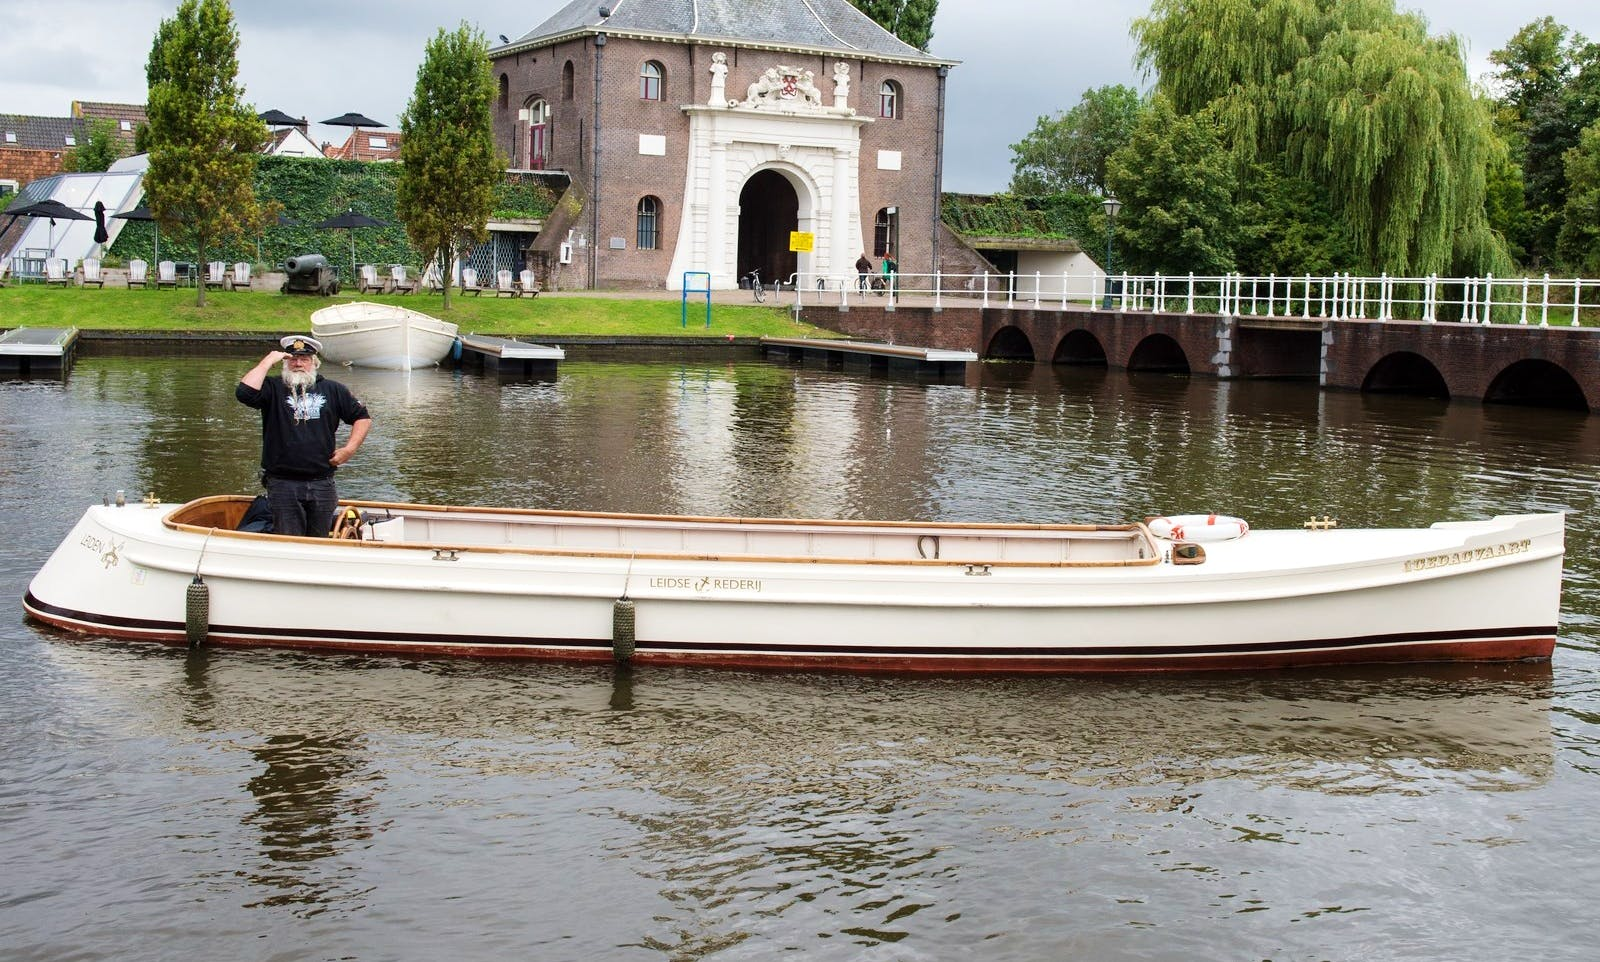 Classical Steel Boat Available for Private Charter in Leiden, the Netherlands